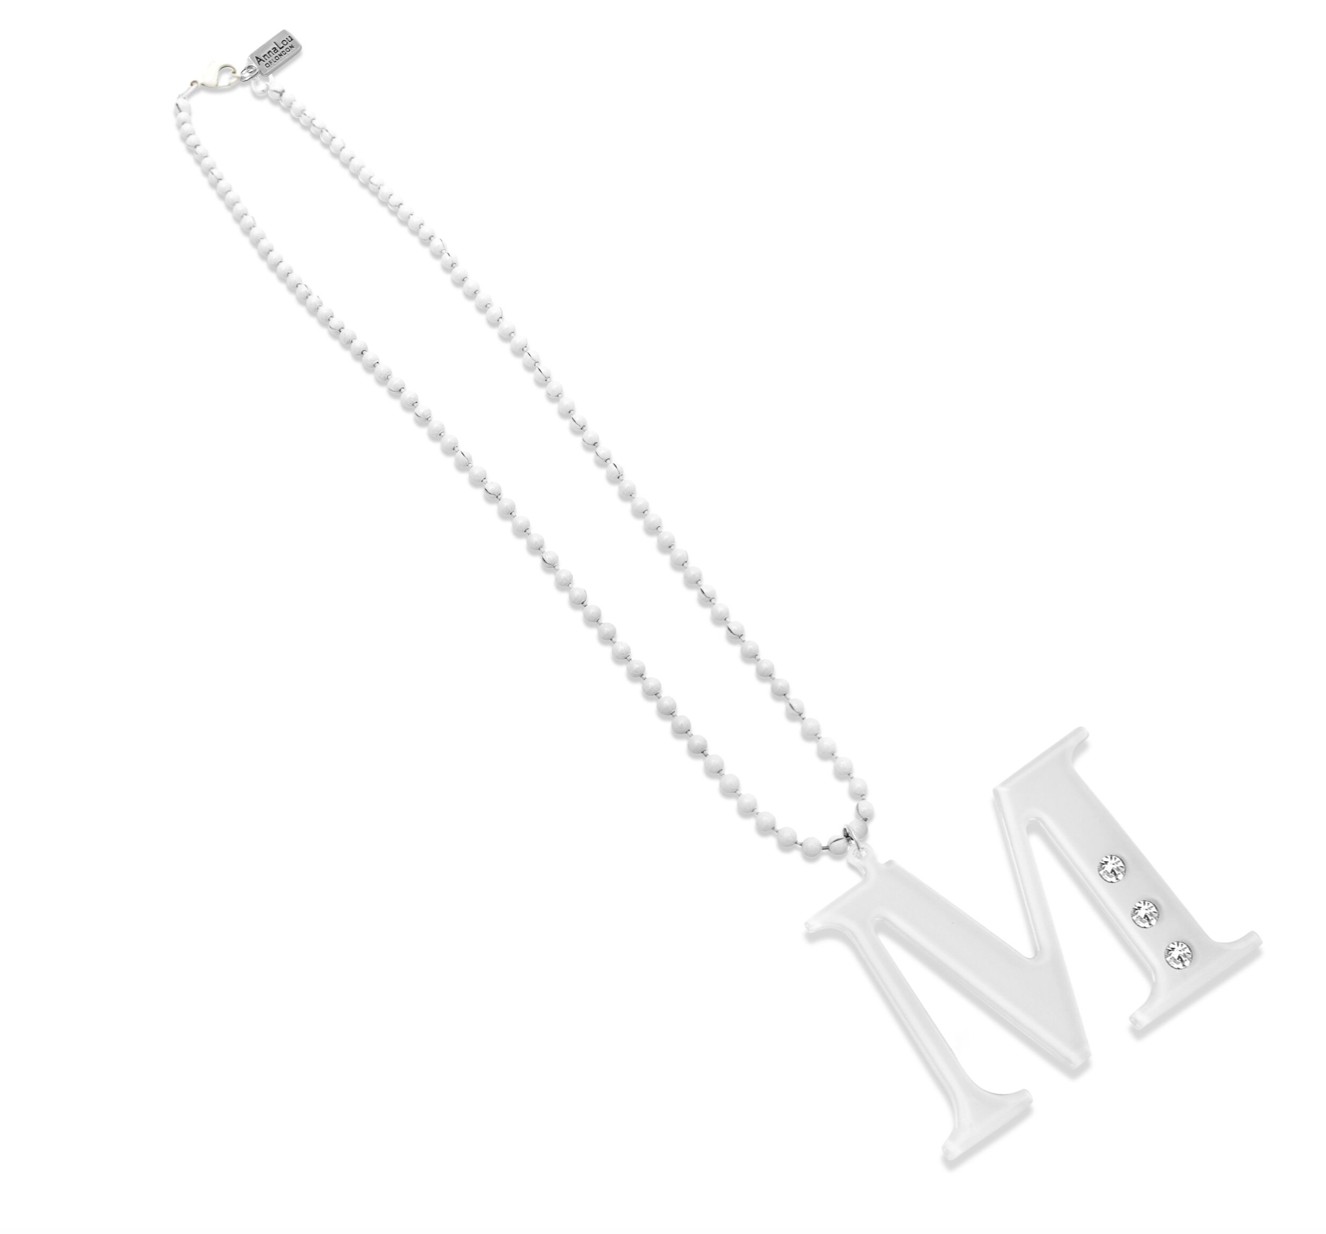 M Lucite Crystal Necklace